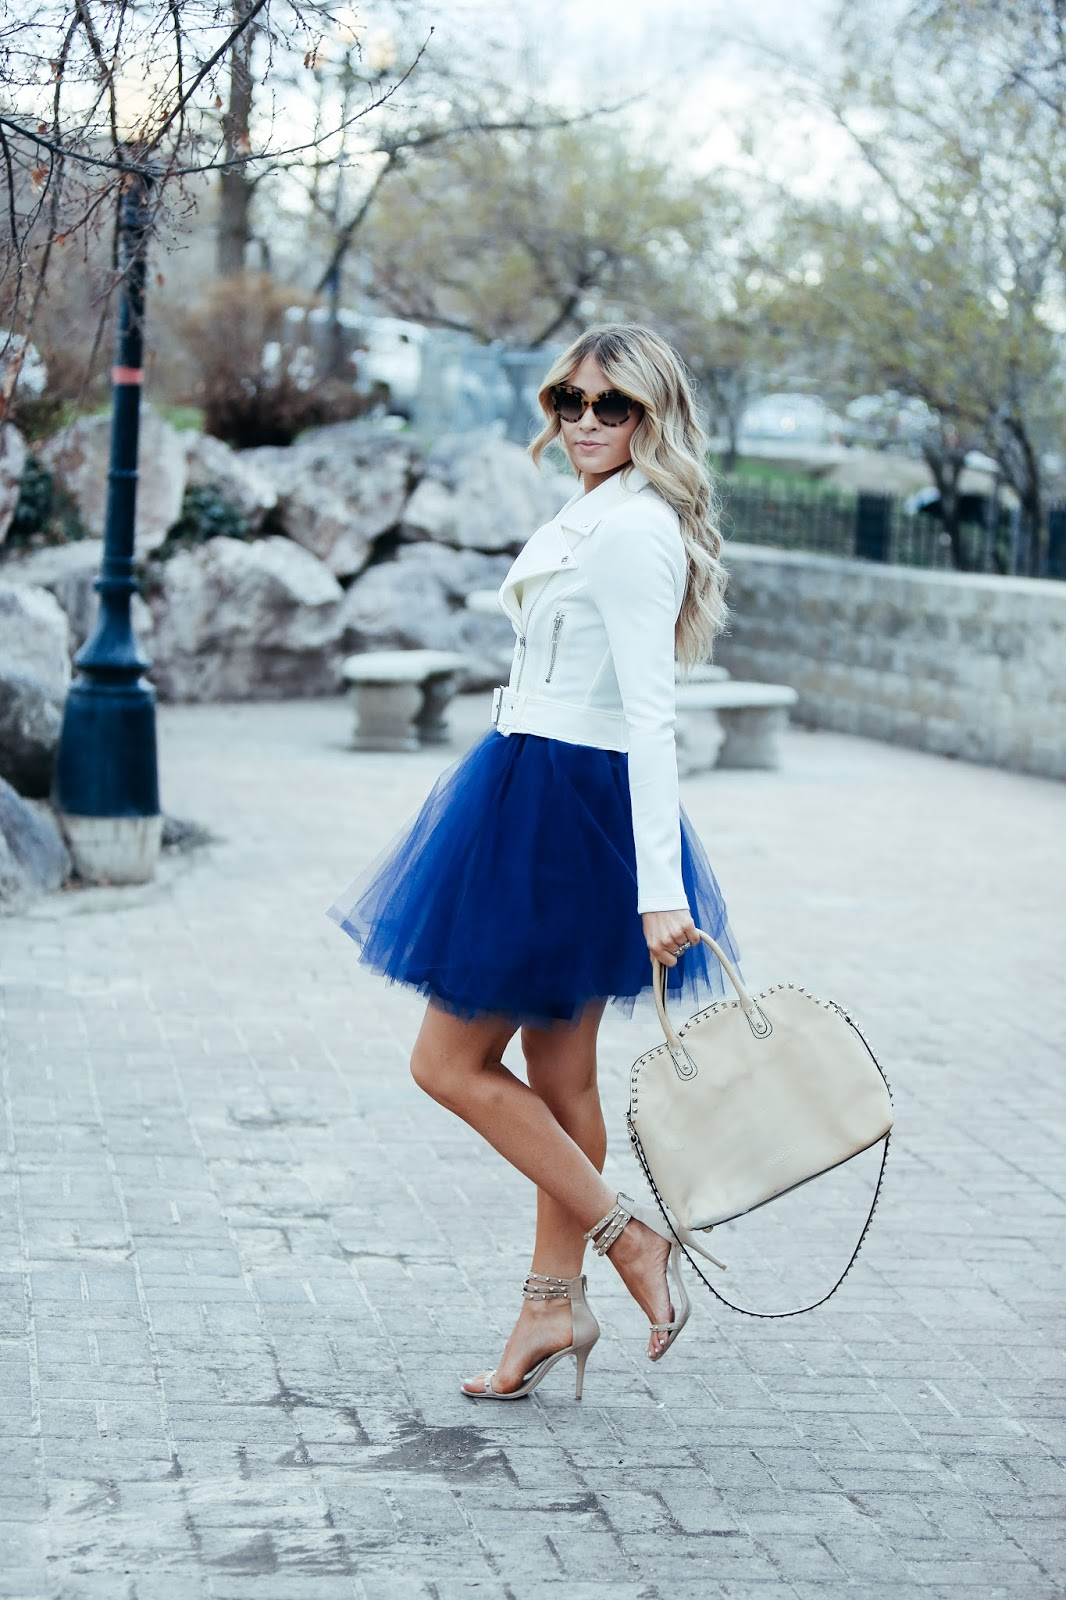 Add some edge to your tulle skirt outfit by branching out in your colour scheme and going for a shade of cool blue like Cara Loren! This beautiful royal blue looks fresh and original worn with a cute white leather jacket and neutral heels. Dress: Nha Khanh, Jacket: Windsor.